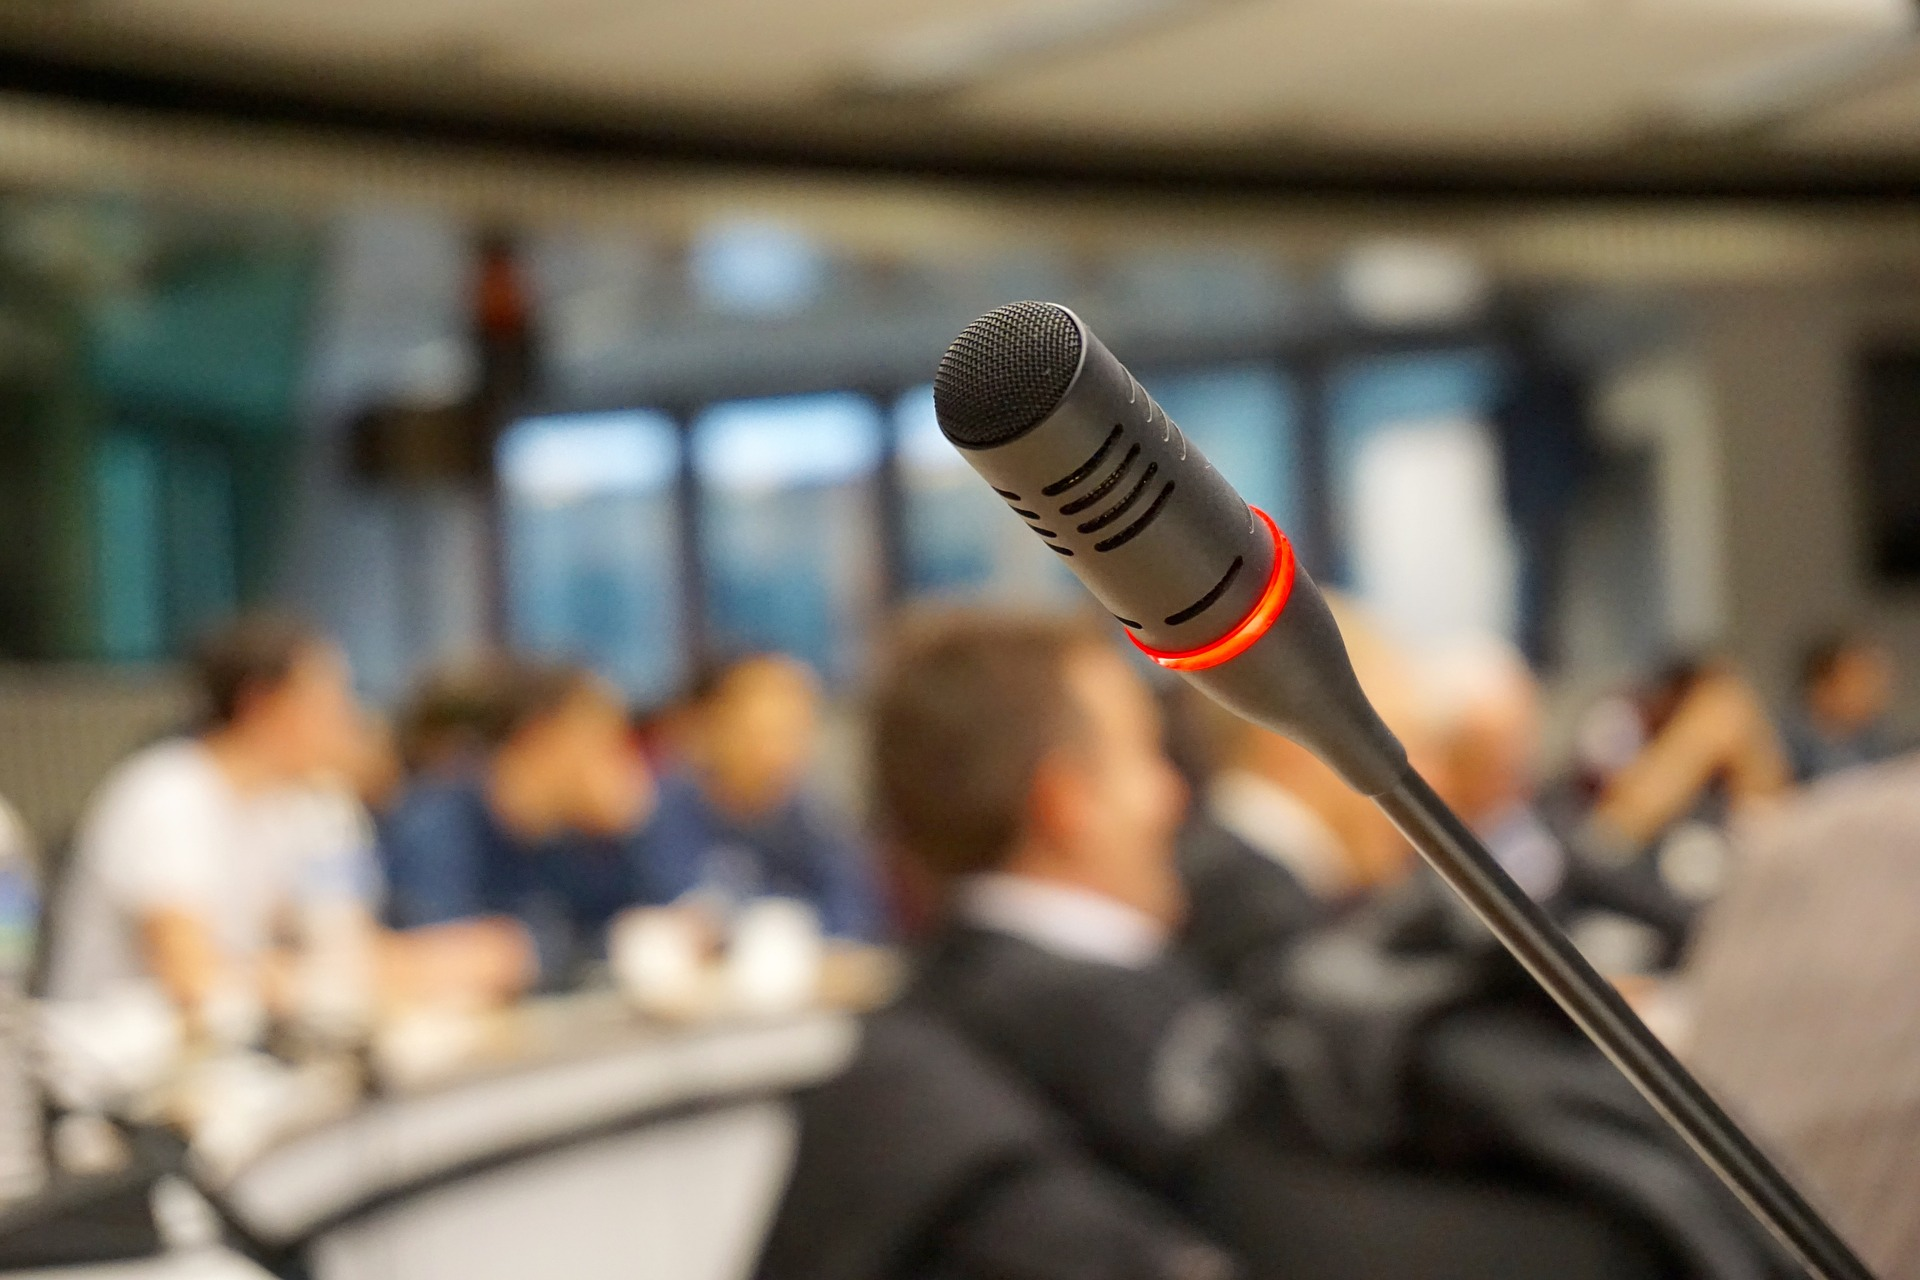 A conference room filled with people and focus on a microphone